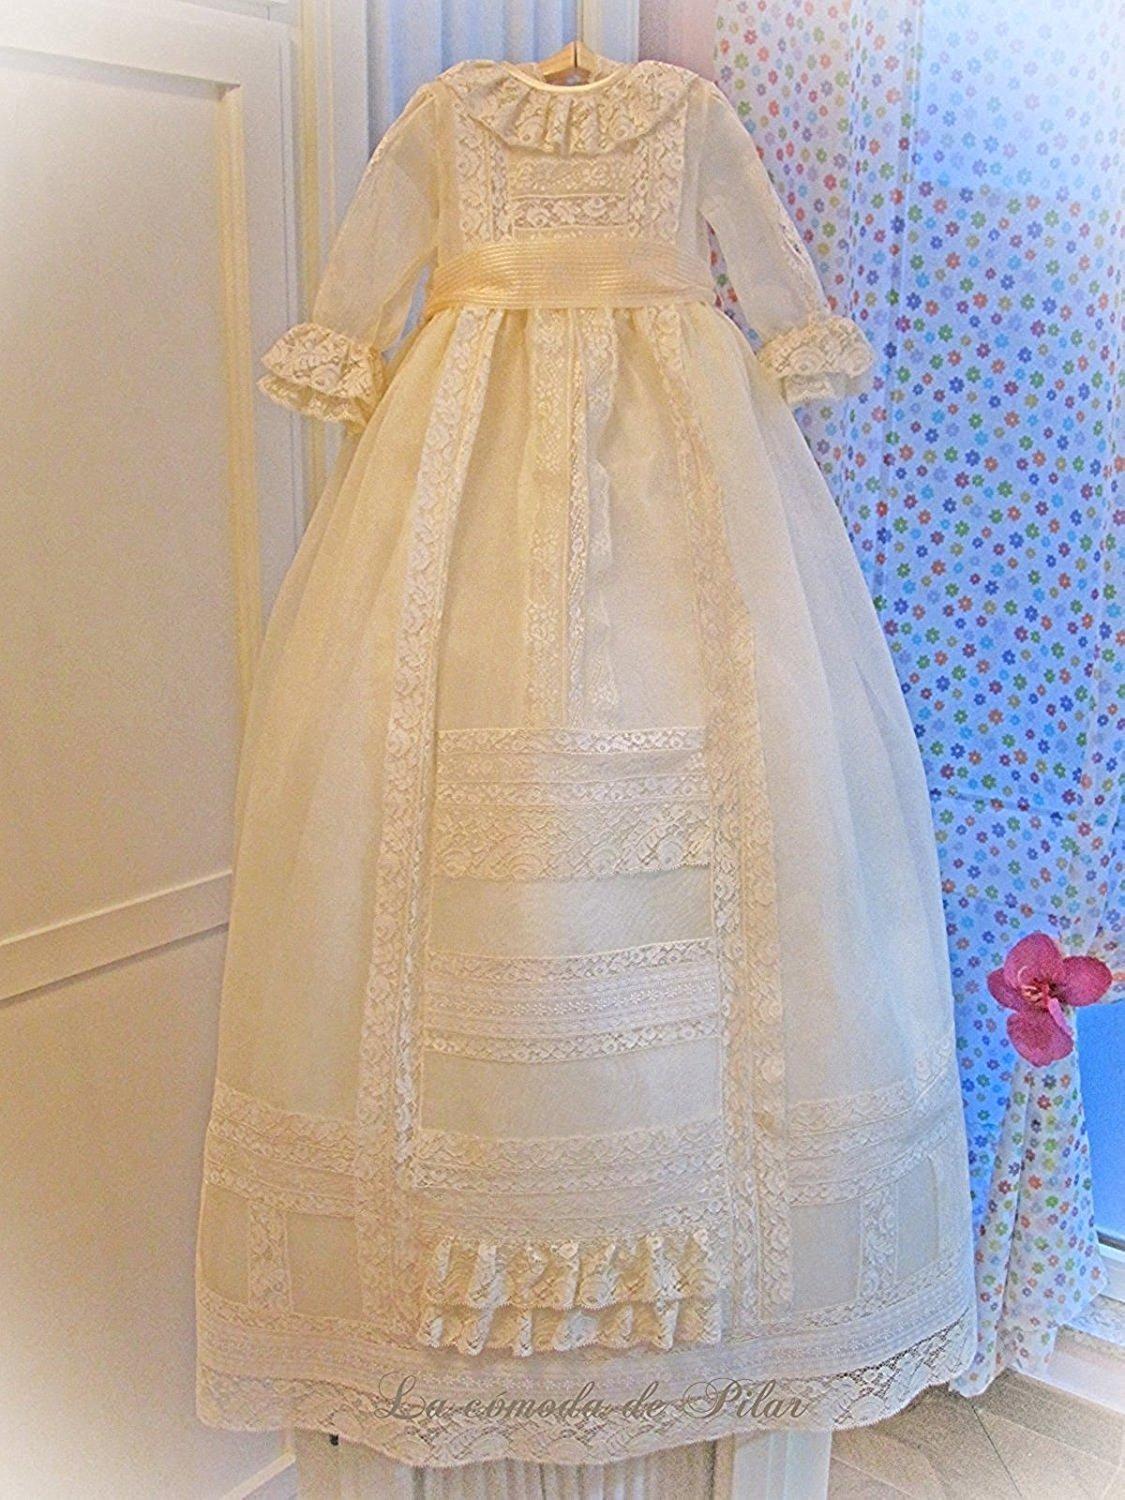 Banfvting Lace Long Baby Girls Dress Christening Gowns With Sleeves by Banfvting (Image #4)